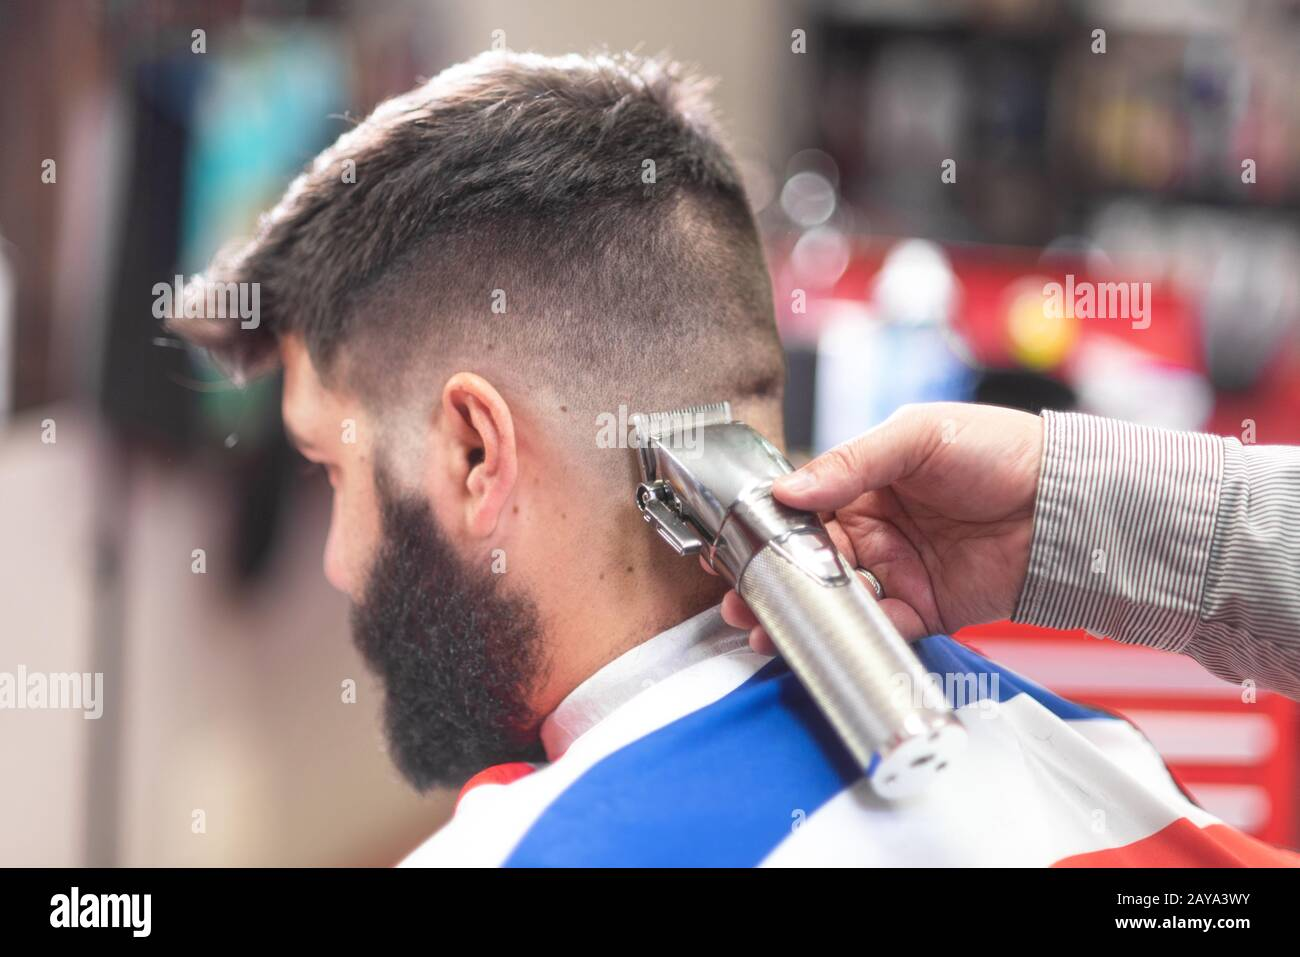 Handsome bearded man, getting haircut by barber, with electric trimmer at barbershop. Stock Photo